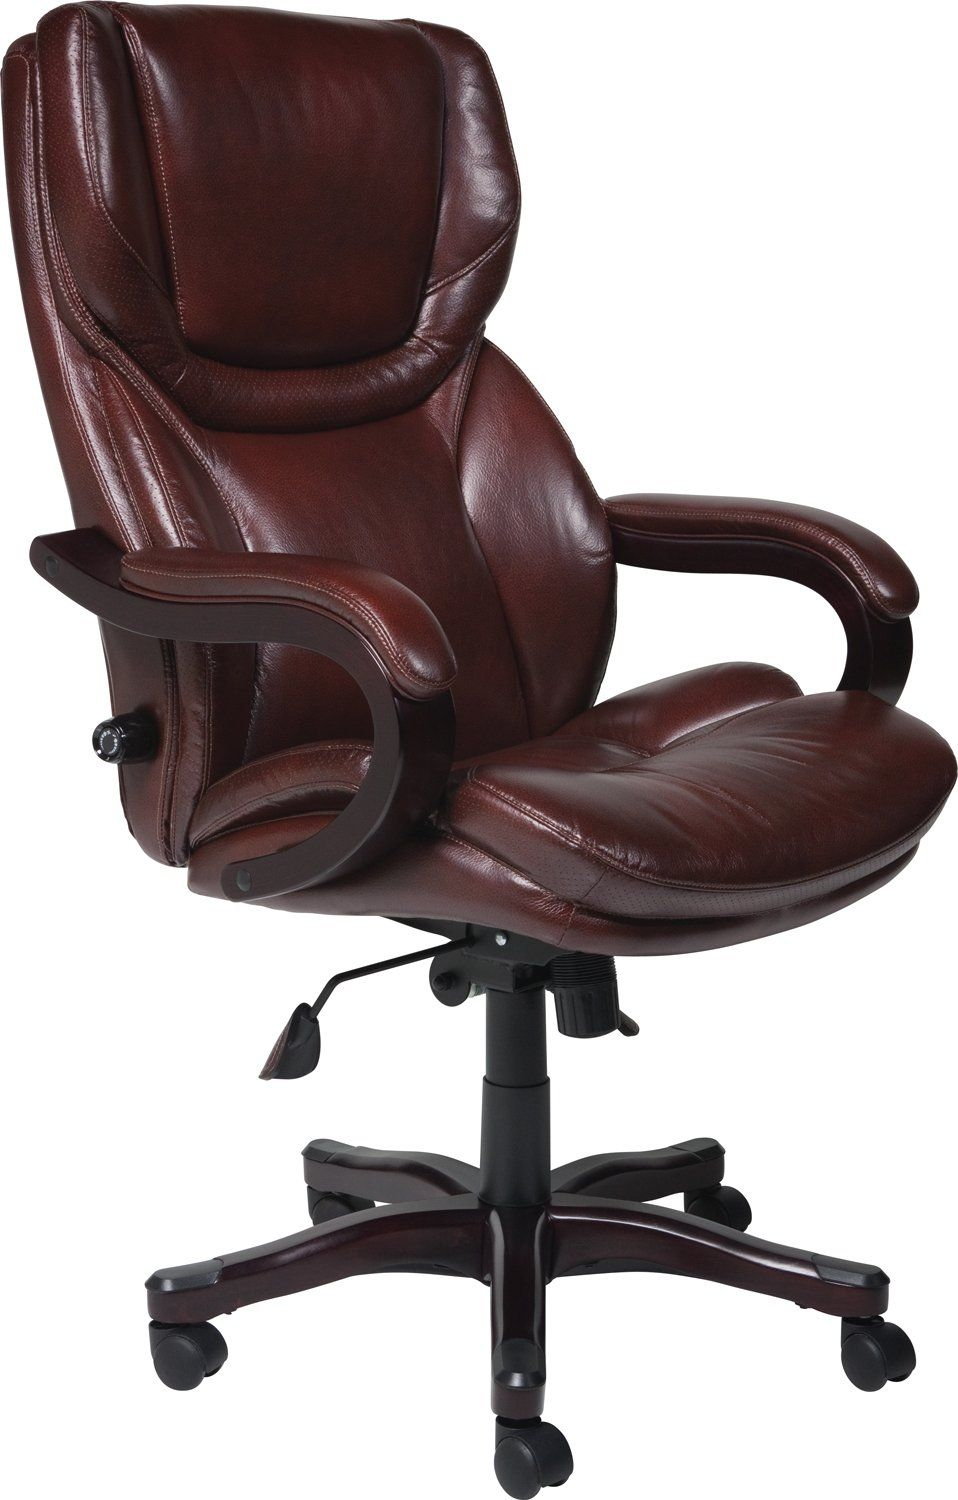 Remarkable Serta 43506 Bonded Leather Big Tall Executive Chair Brown Andrewgaddart Wooden Chair Designs For Living Room Andrewgaddartcom